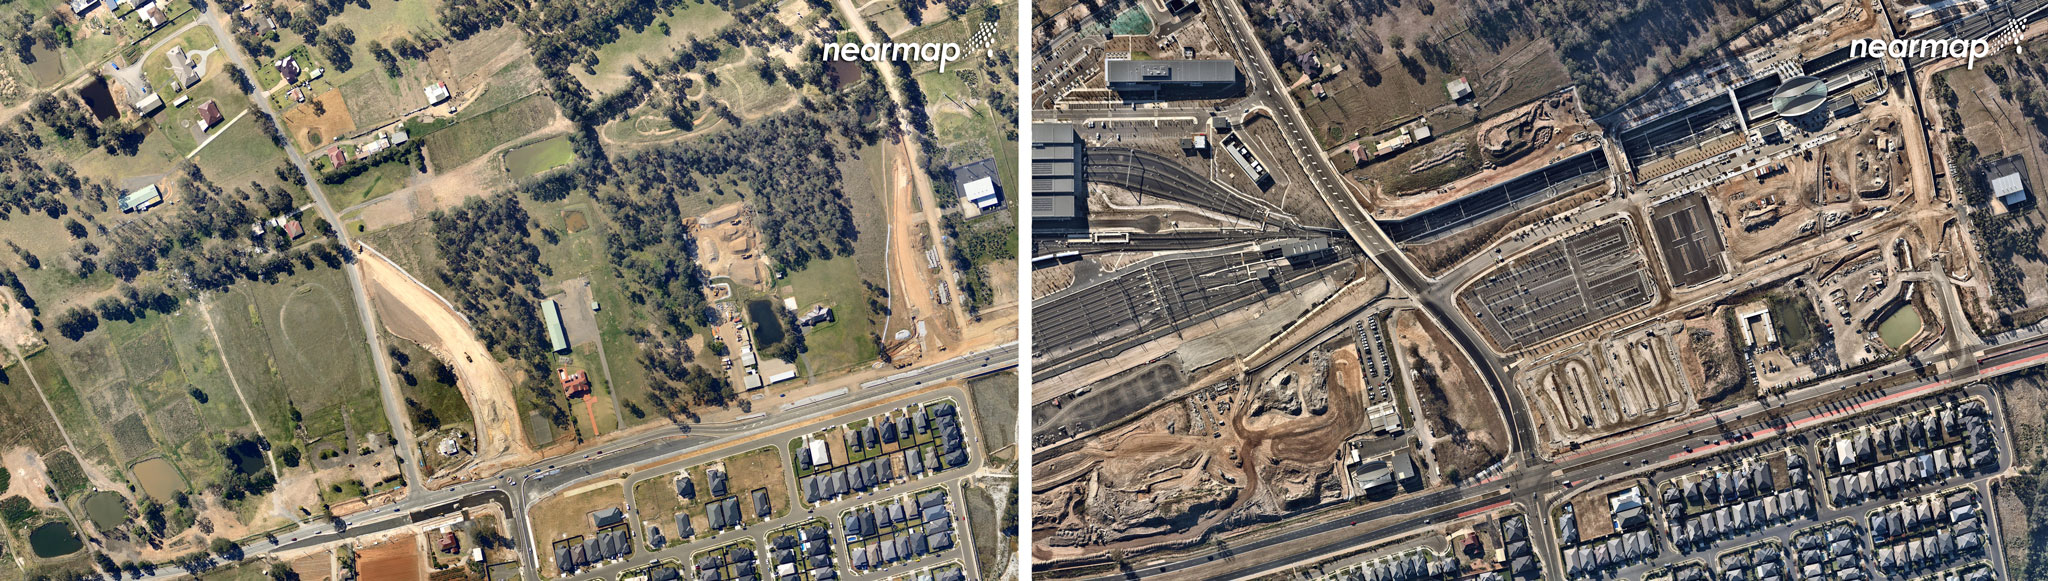 Sydney Metro Train Facility, September 2013 (left), Sydney Metro Train Facility, May 2018 (right).